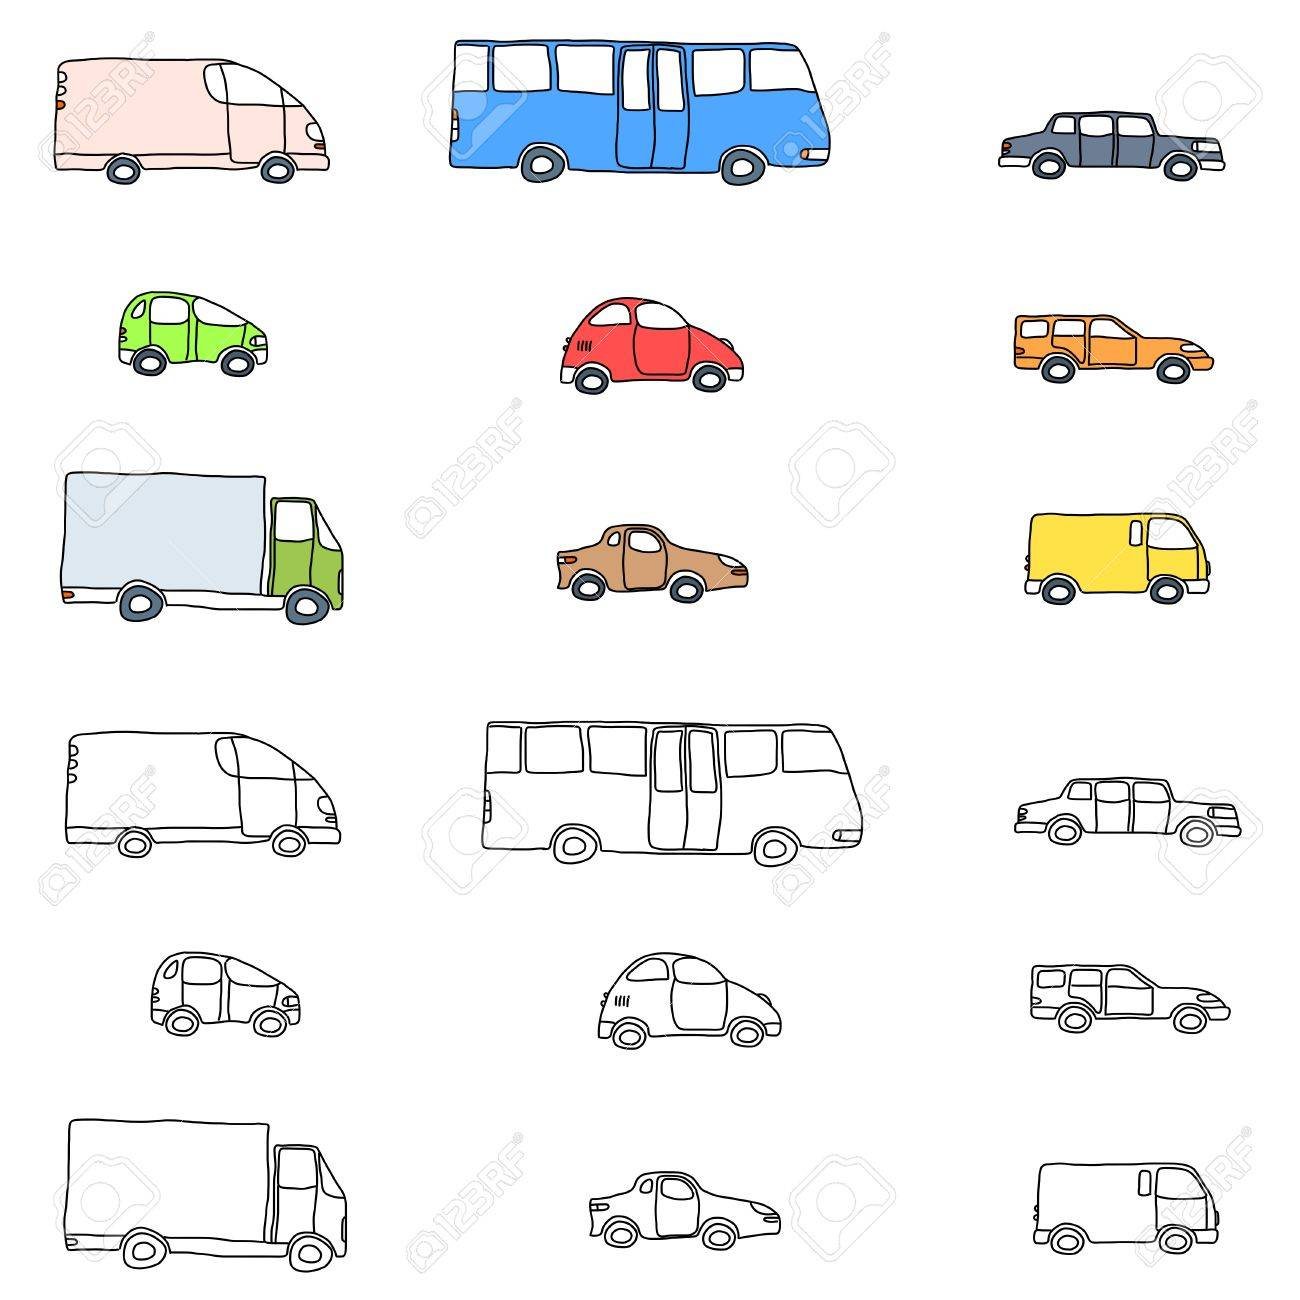 Doodle cartoon icon set - vehicle collection with cars, vans, trucks and a bus Stock Vector - 19974332